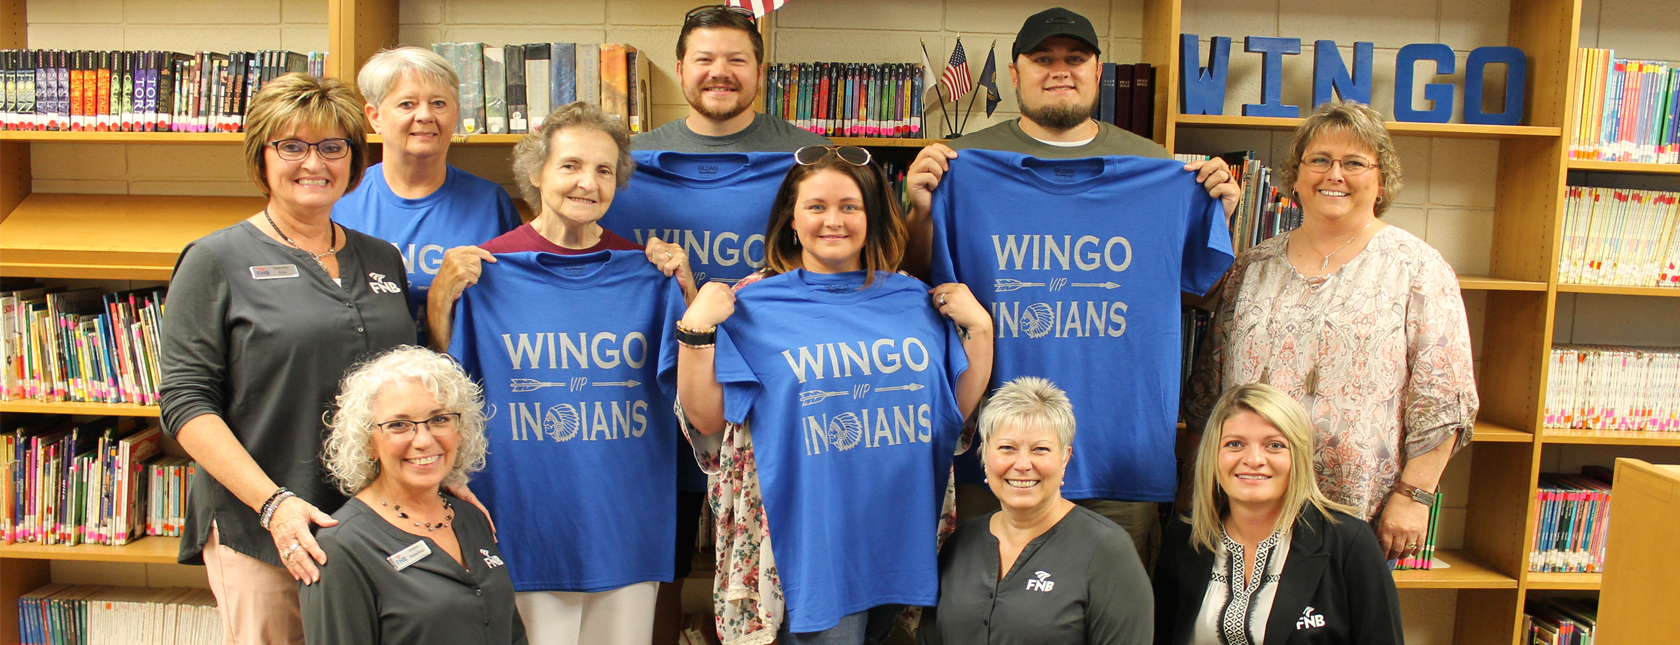 FNB bank employees with Wingo Indians friends holding up Wingo Indians shirts